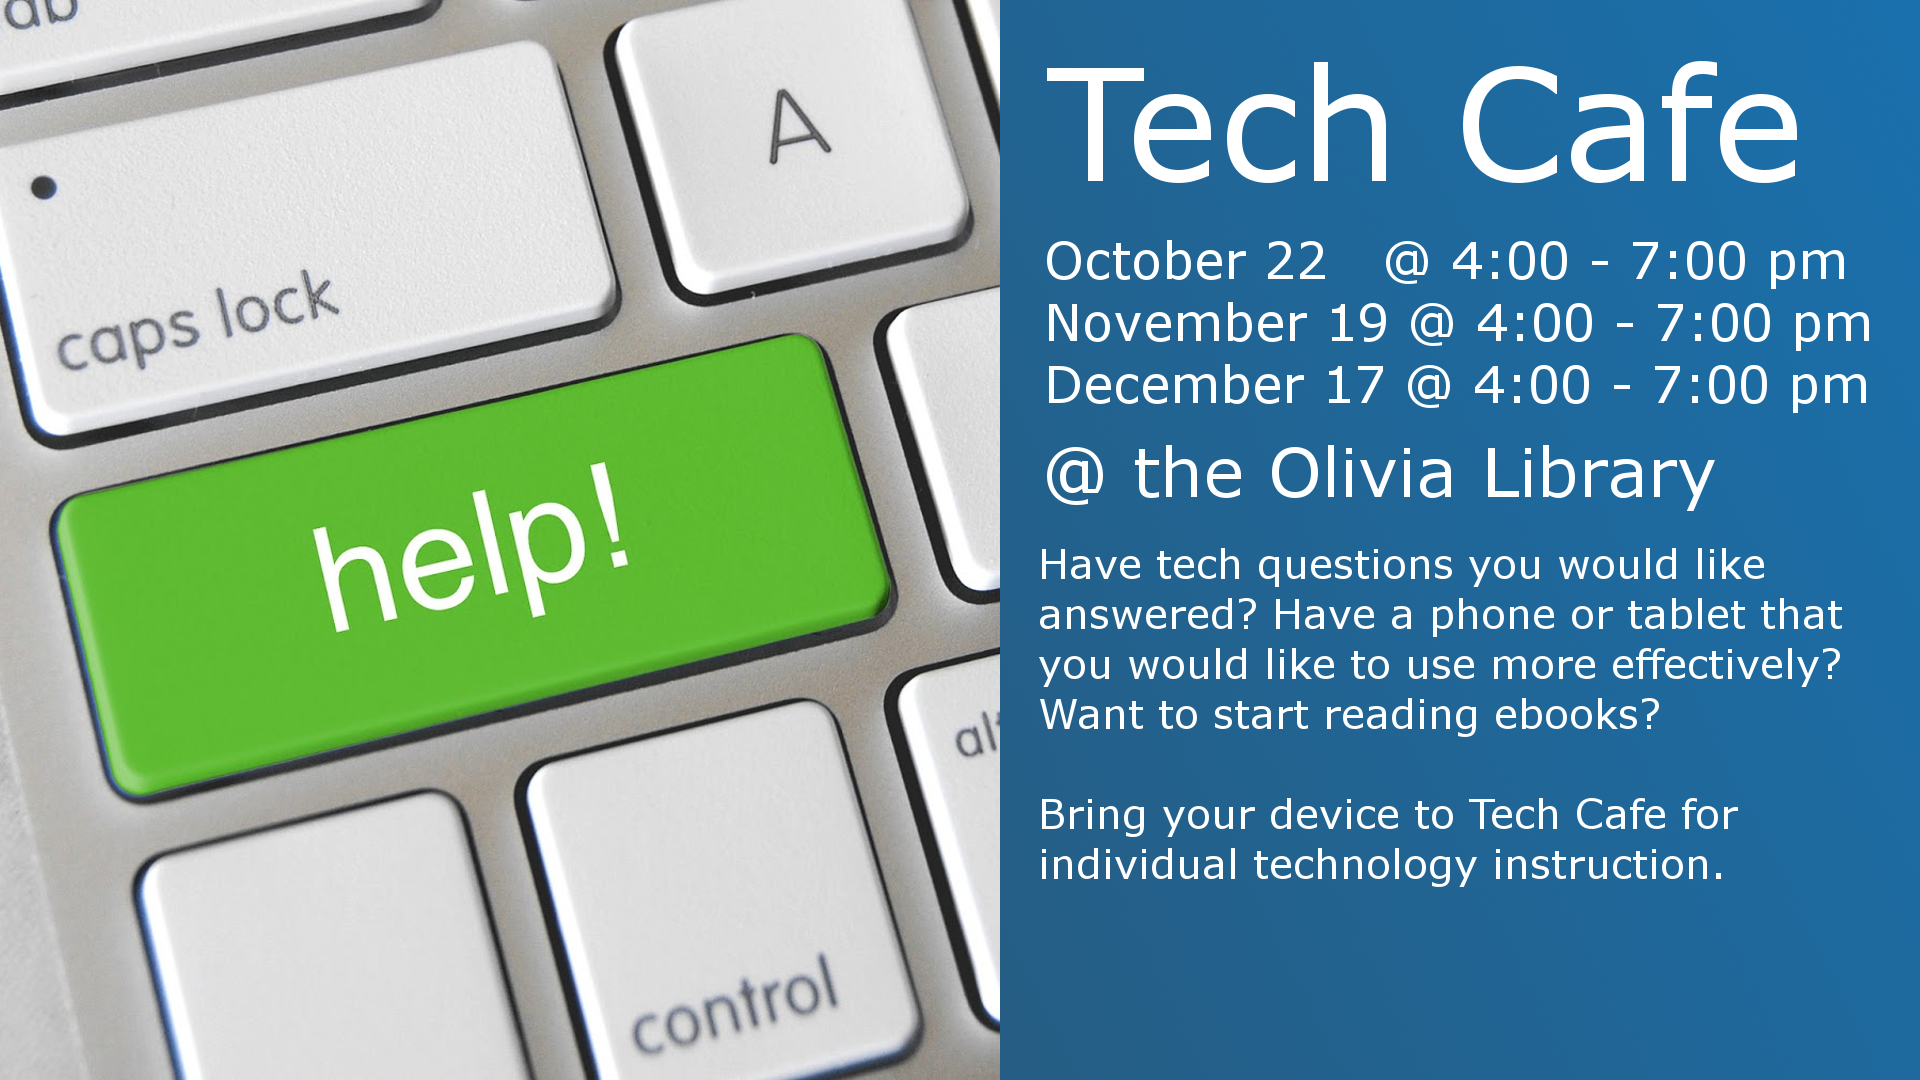 Tech Cafe  October 22 4:00 - 7:00 pm November 19 4:00 - 7:00 pm December 17 4:00 - 7:00 pm  @ the Olivia Library  Have tech questions you would like answered? Have a phone or tablet you would like to use more effectively? Want to start reading ebooks?  Bring your device to Tech Cafe for individual technology instruction.